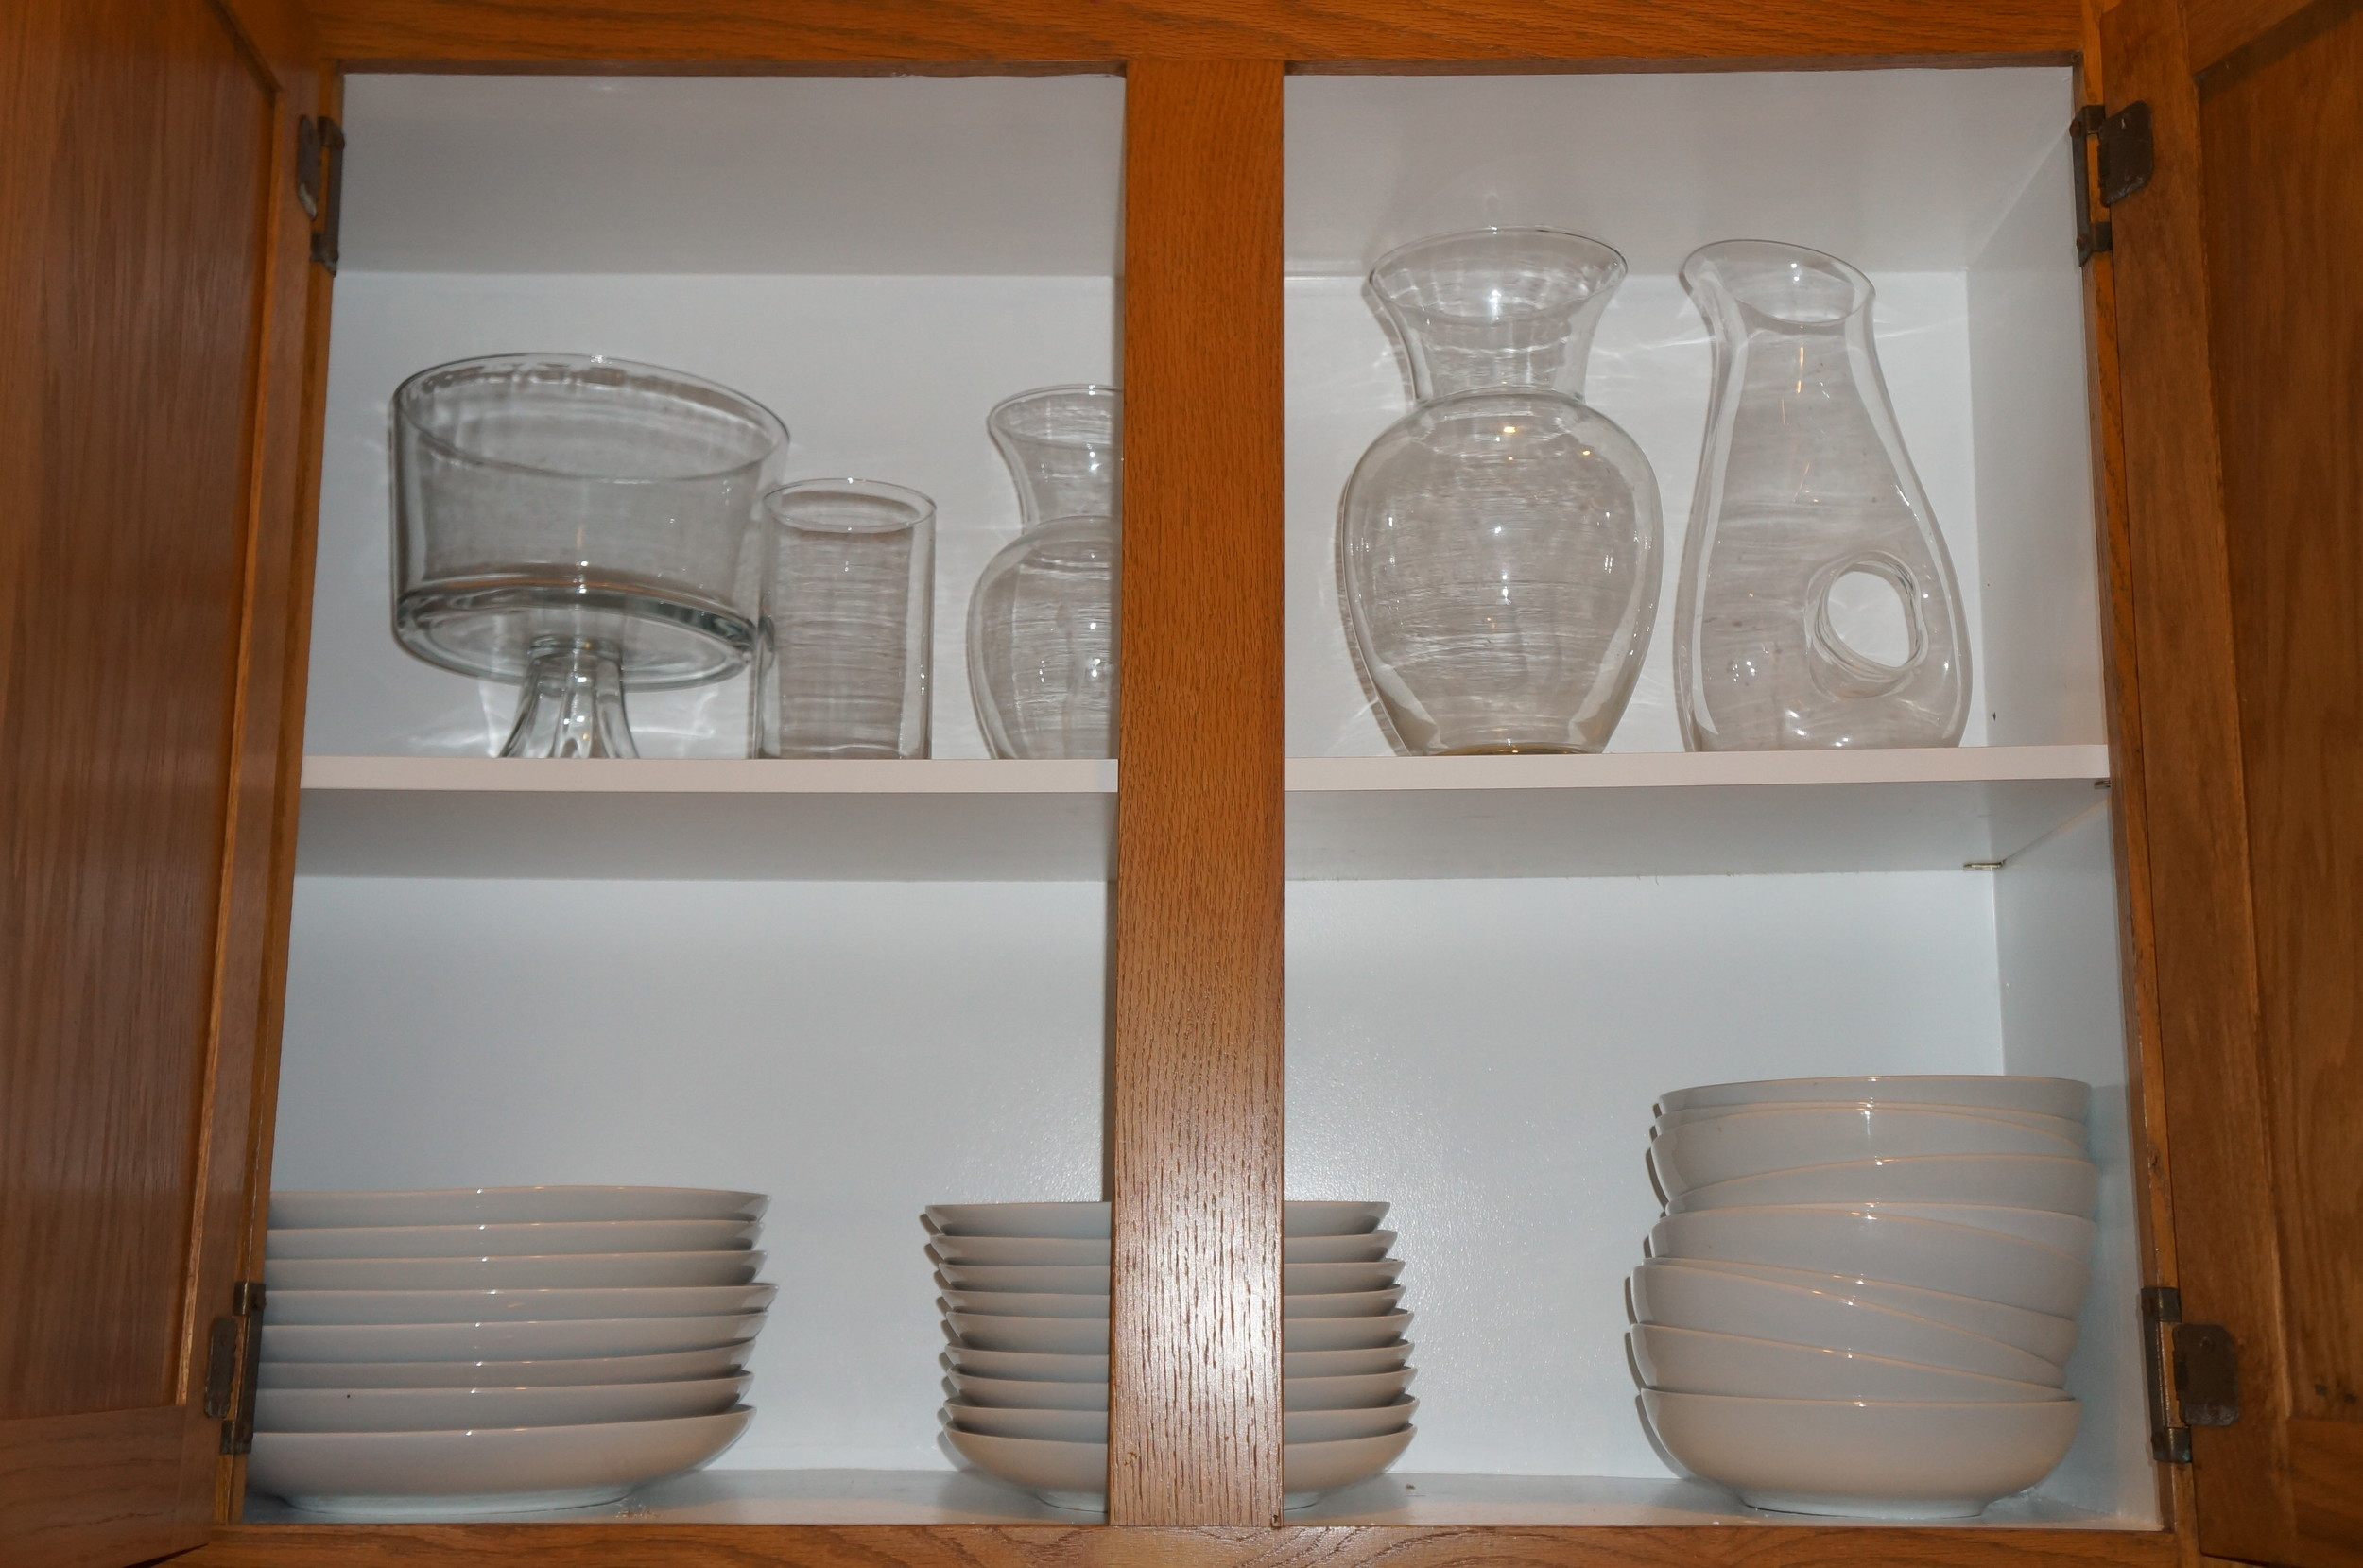 Inside of cabinets AFTER